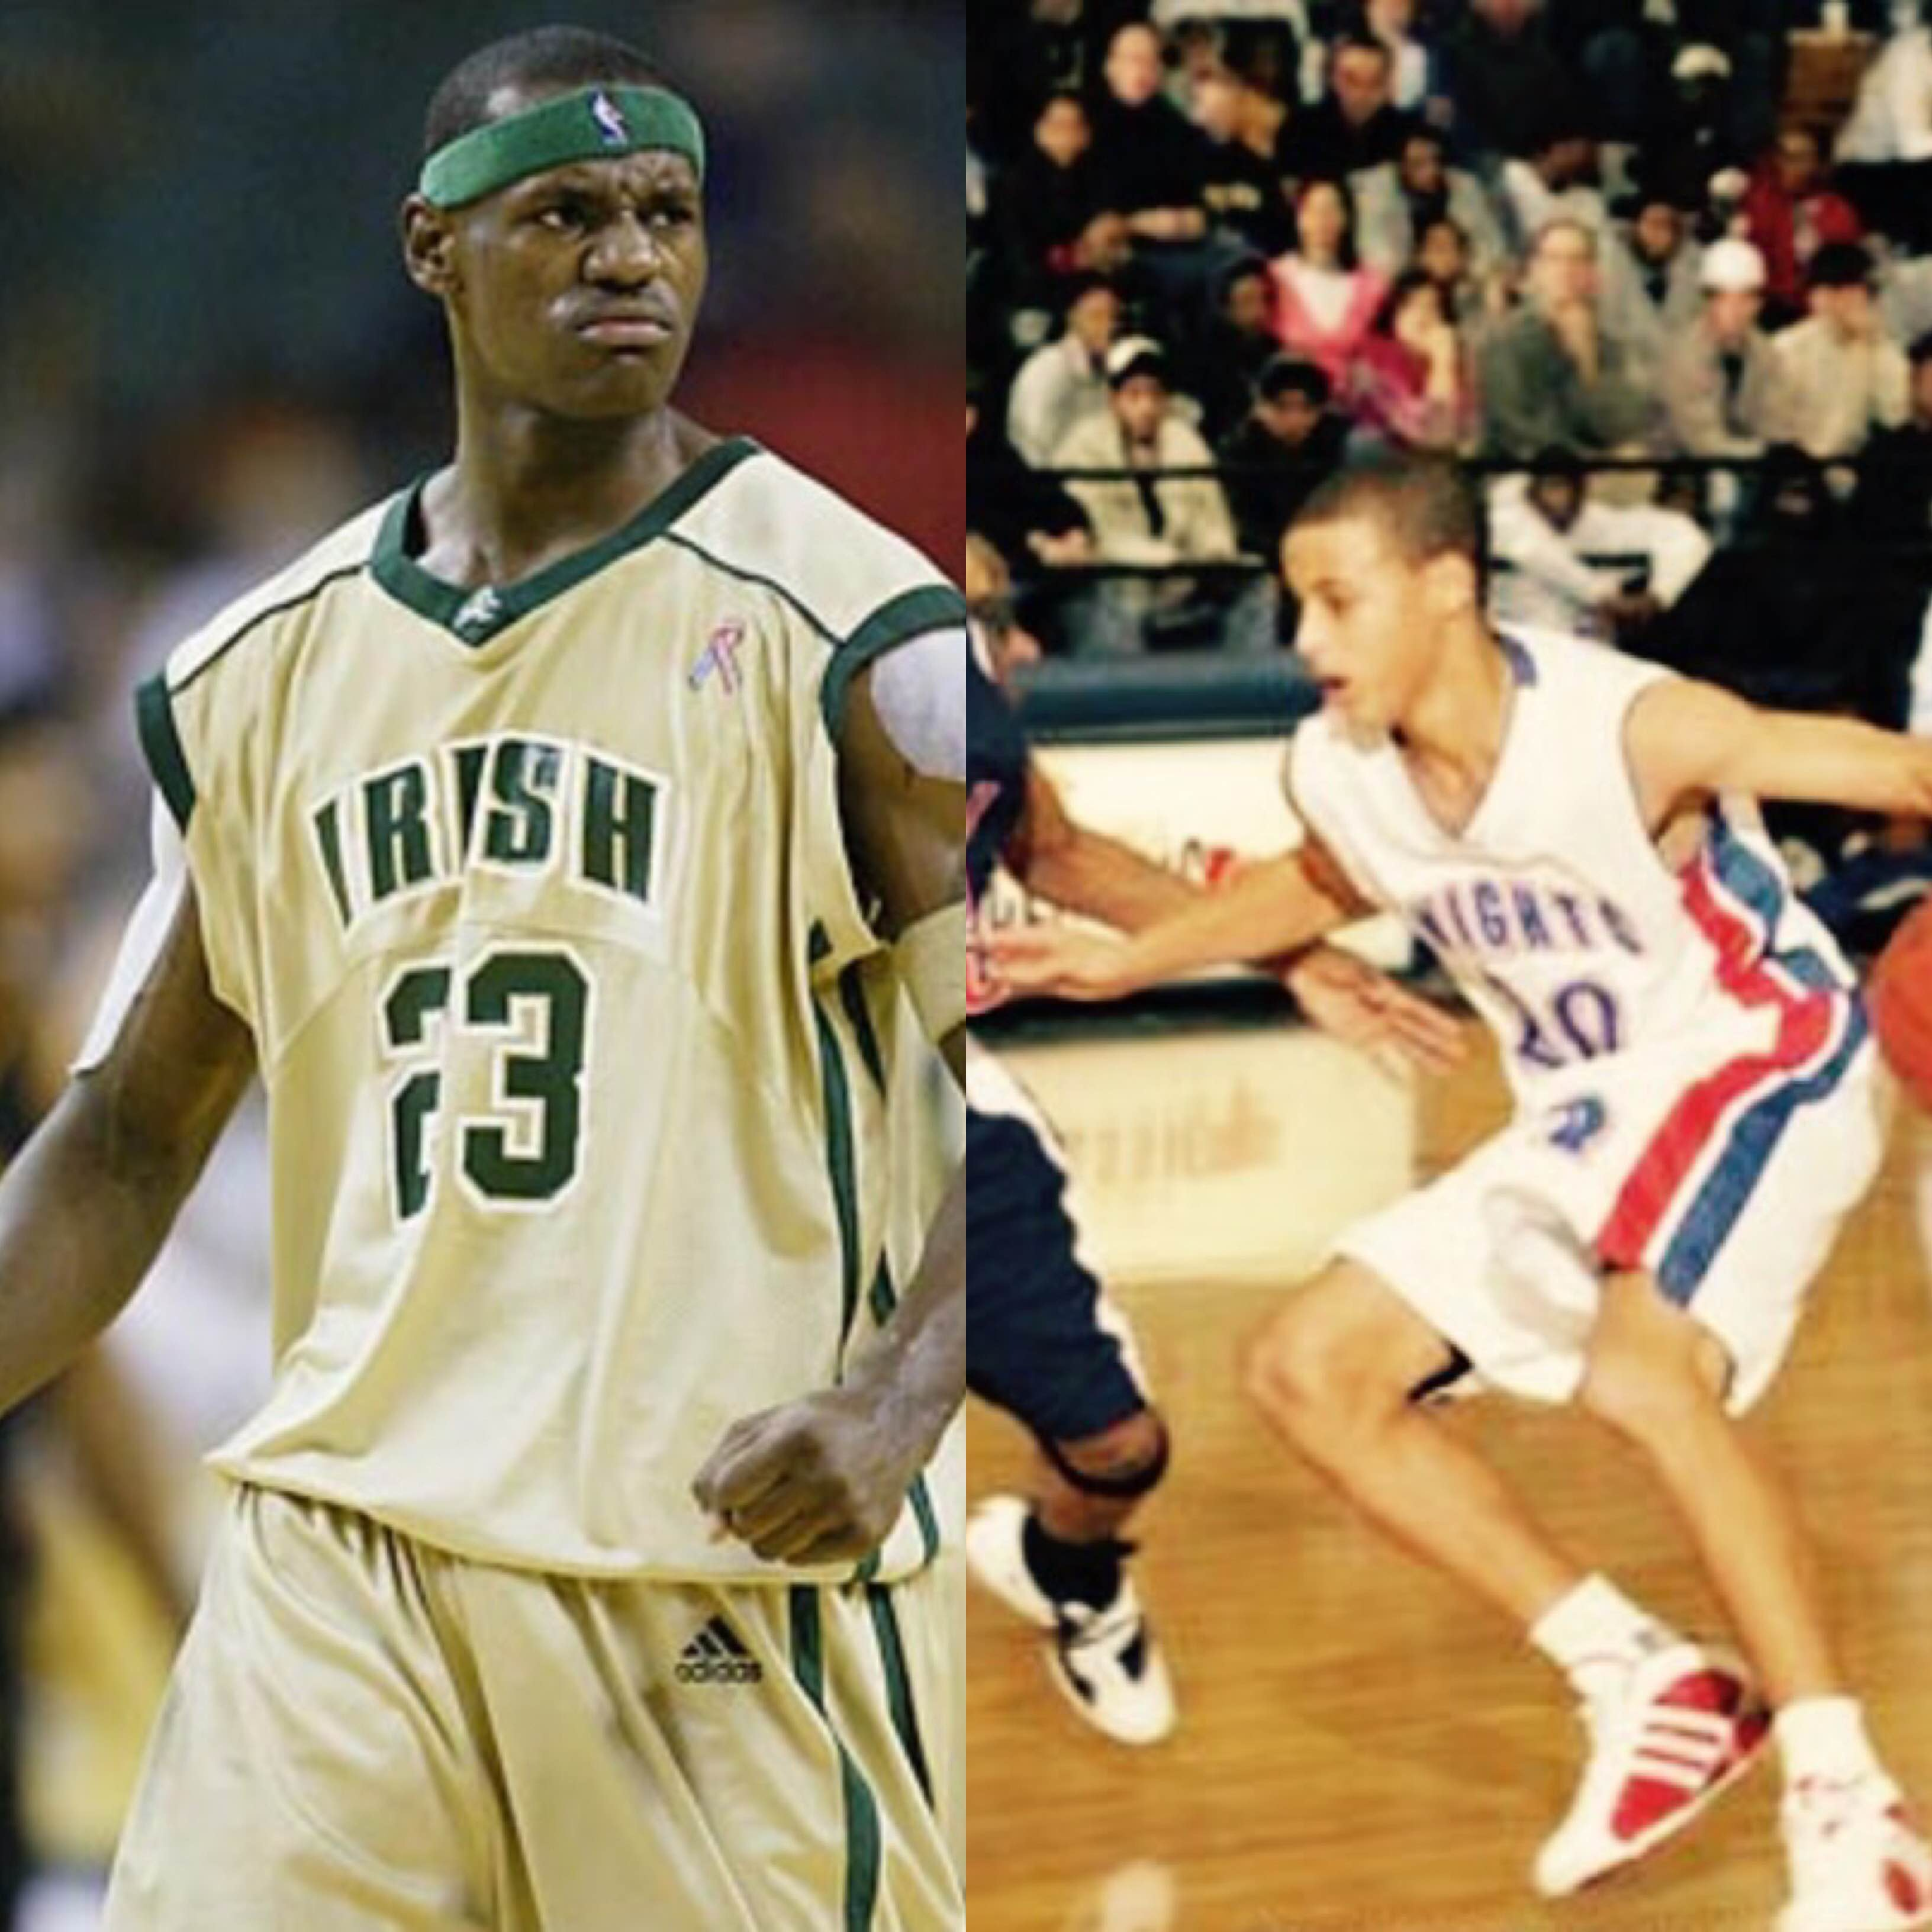 Lebron James (left) at St. Vincent-St. Mary High School and